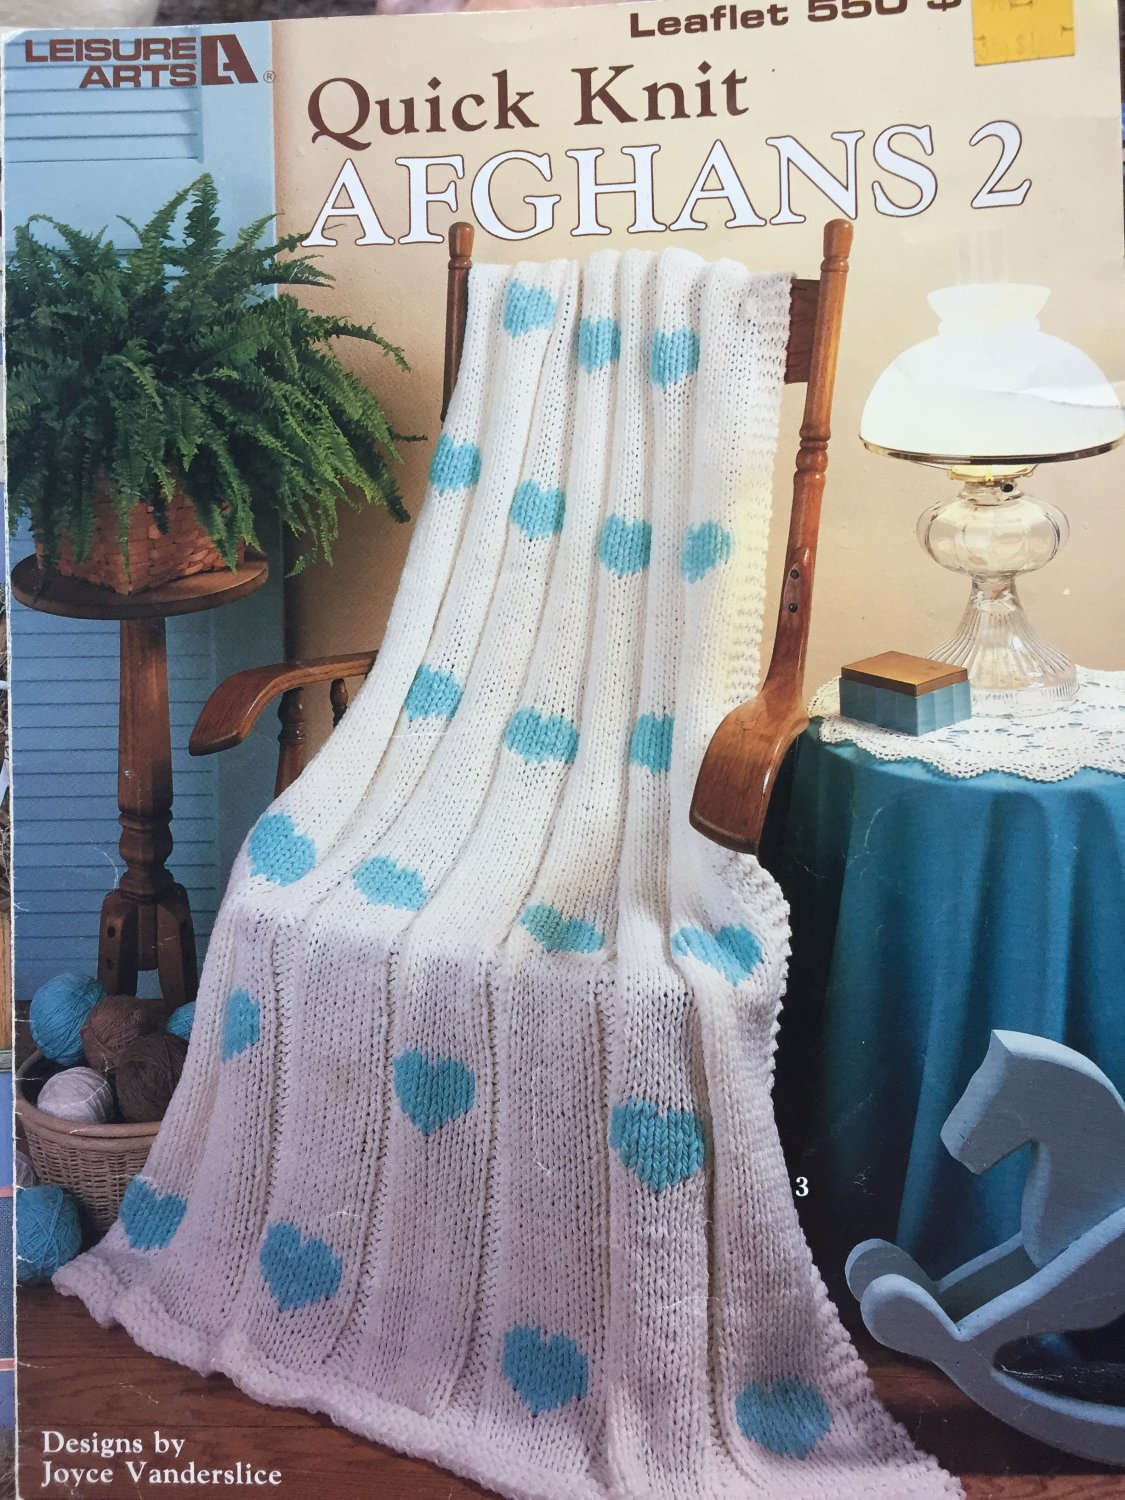 Quick Knit Afghans 2 by Joyce Vanderslice Leisure Arts 550 Knitting Pattern